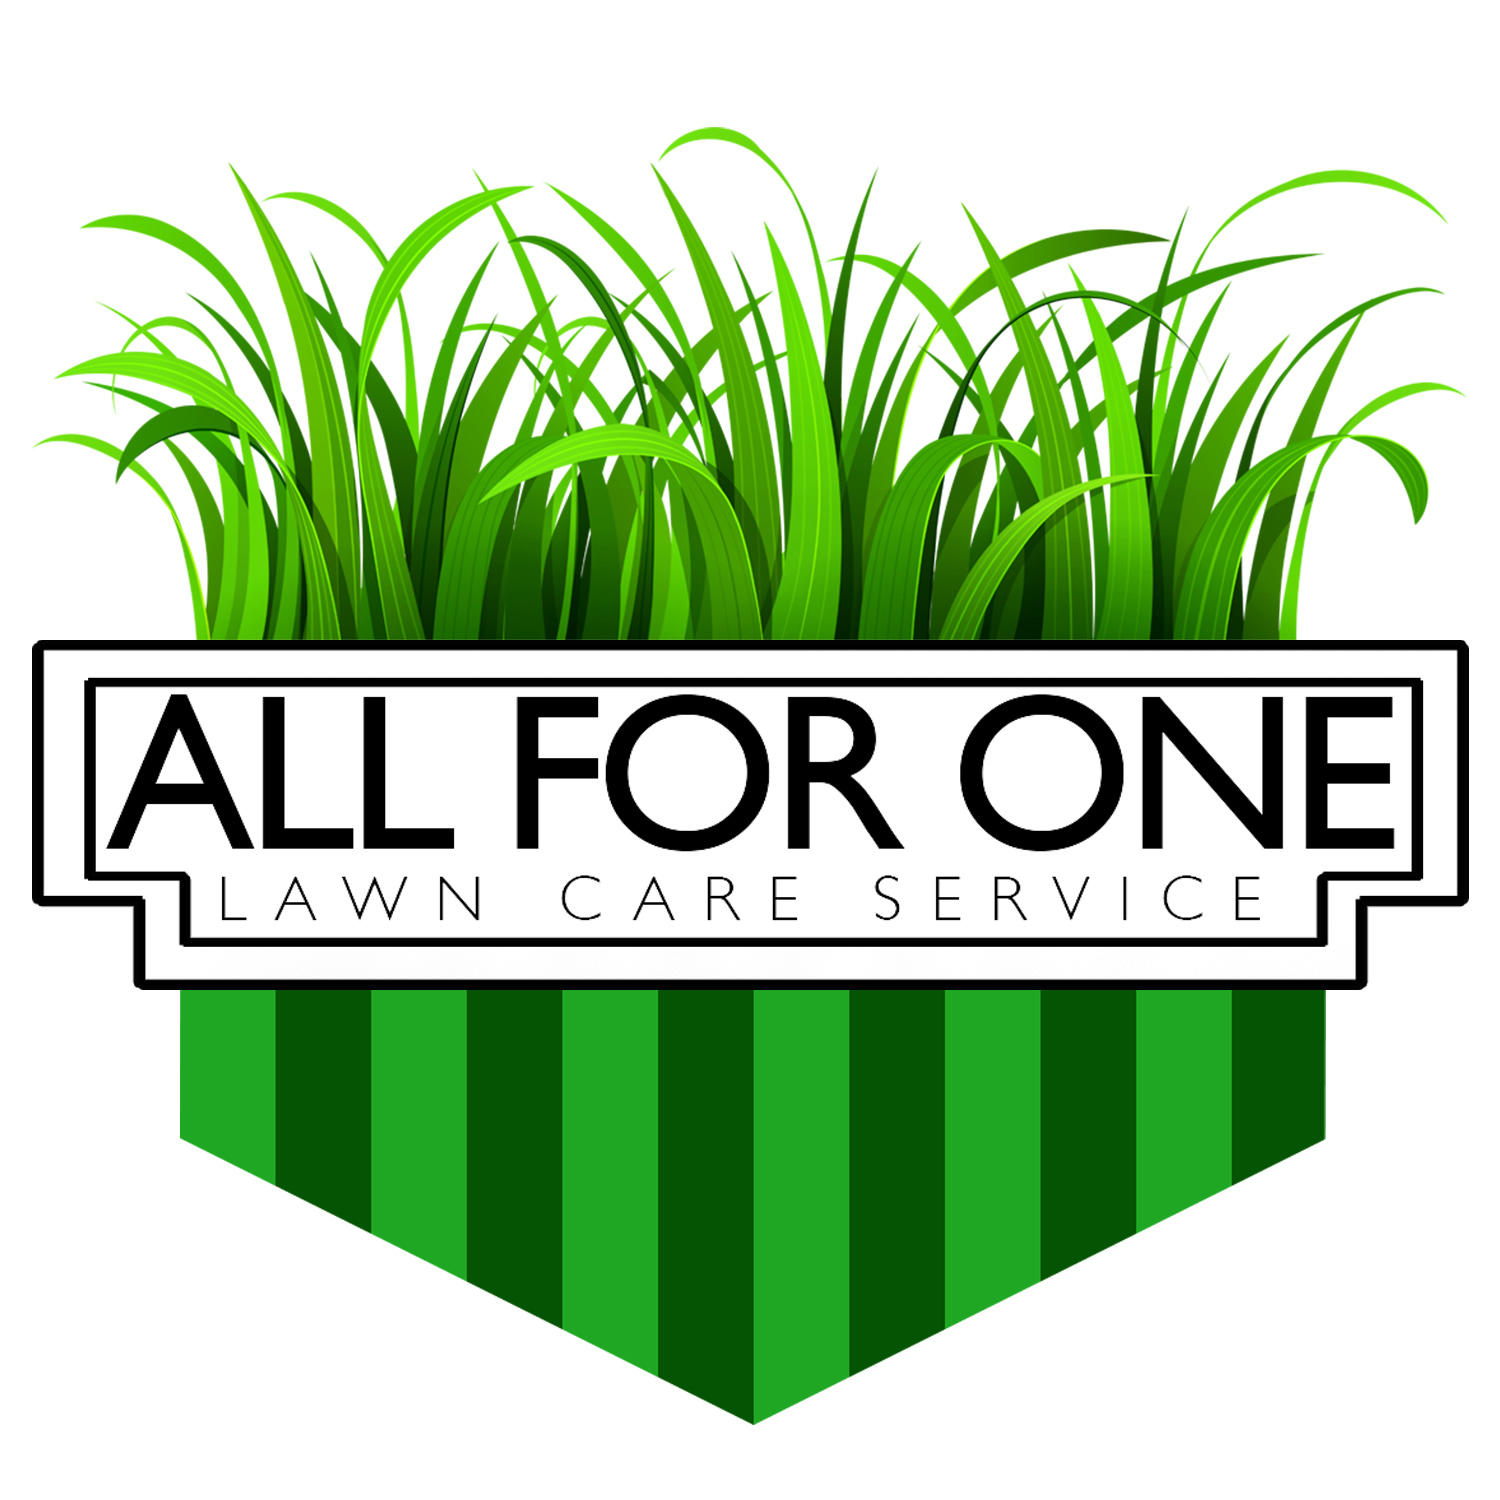 All for one lawn care service snellville georgia ga for Local lawn care services